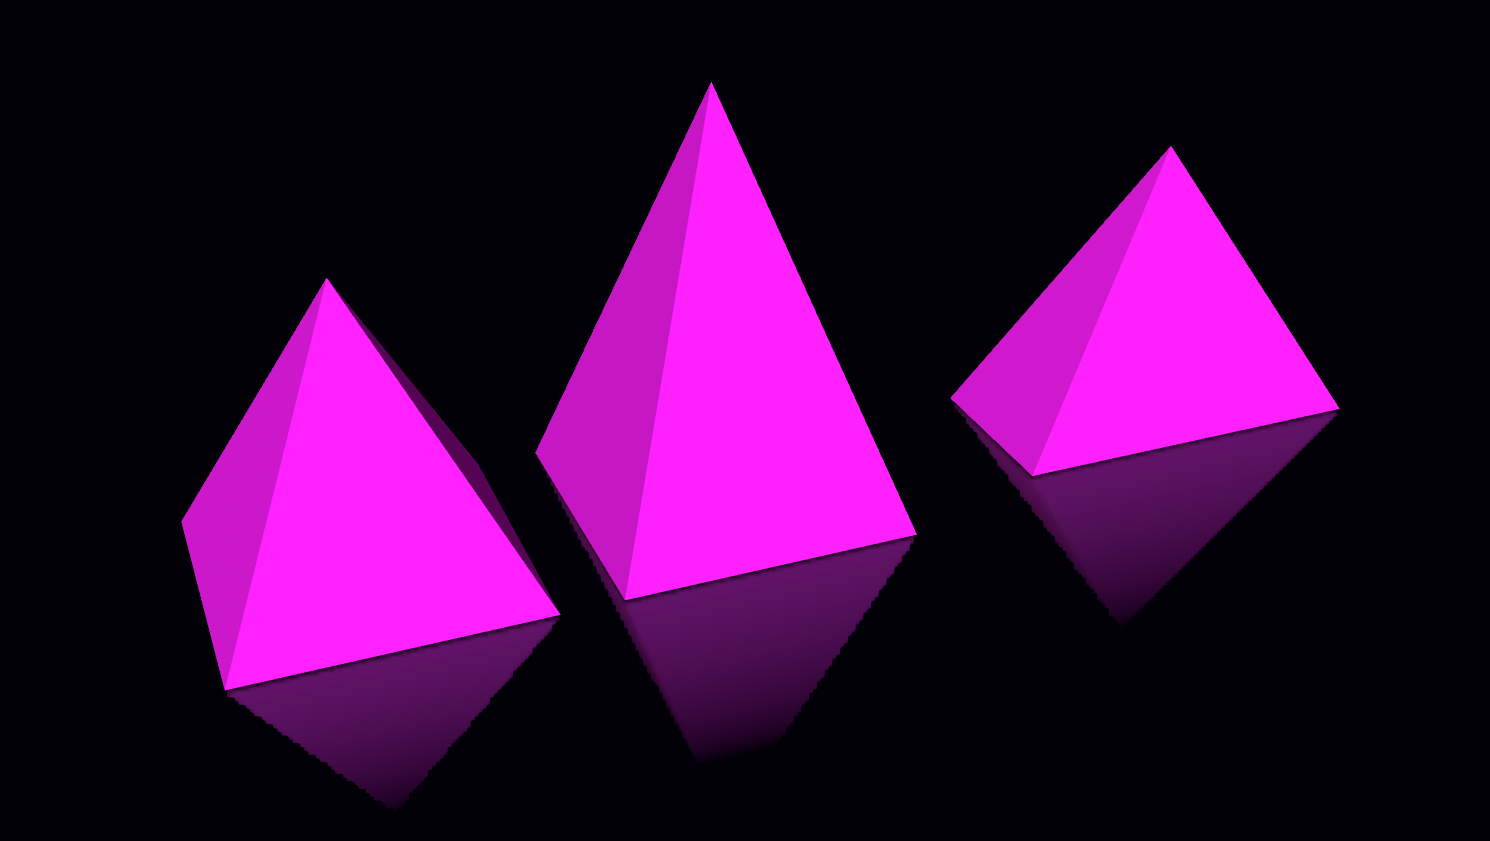 Figure 13. Pyramids with different width, height and length.